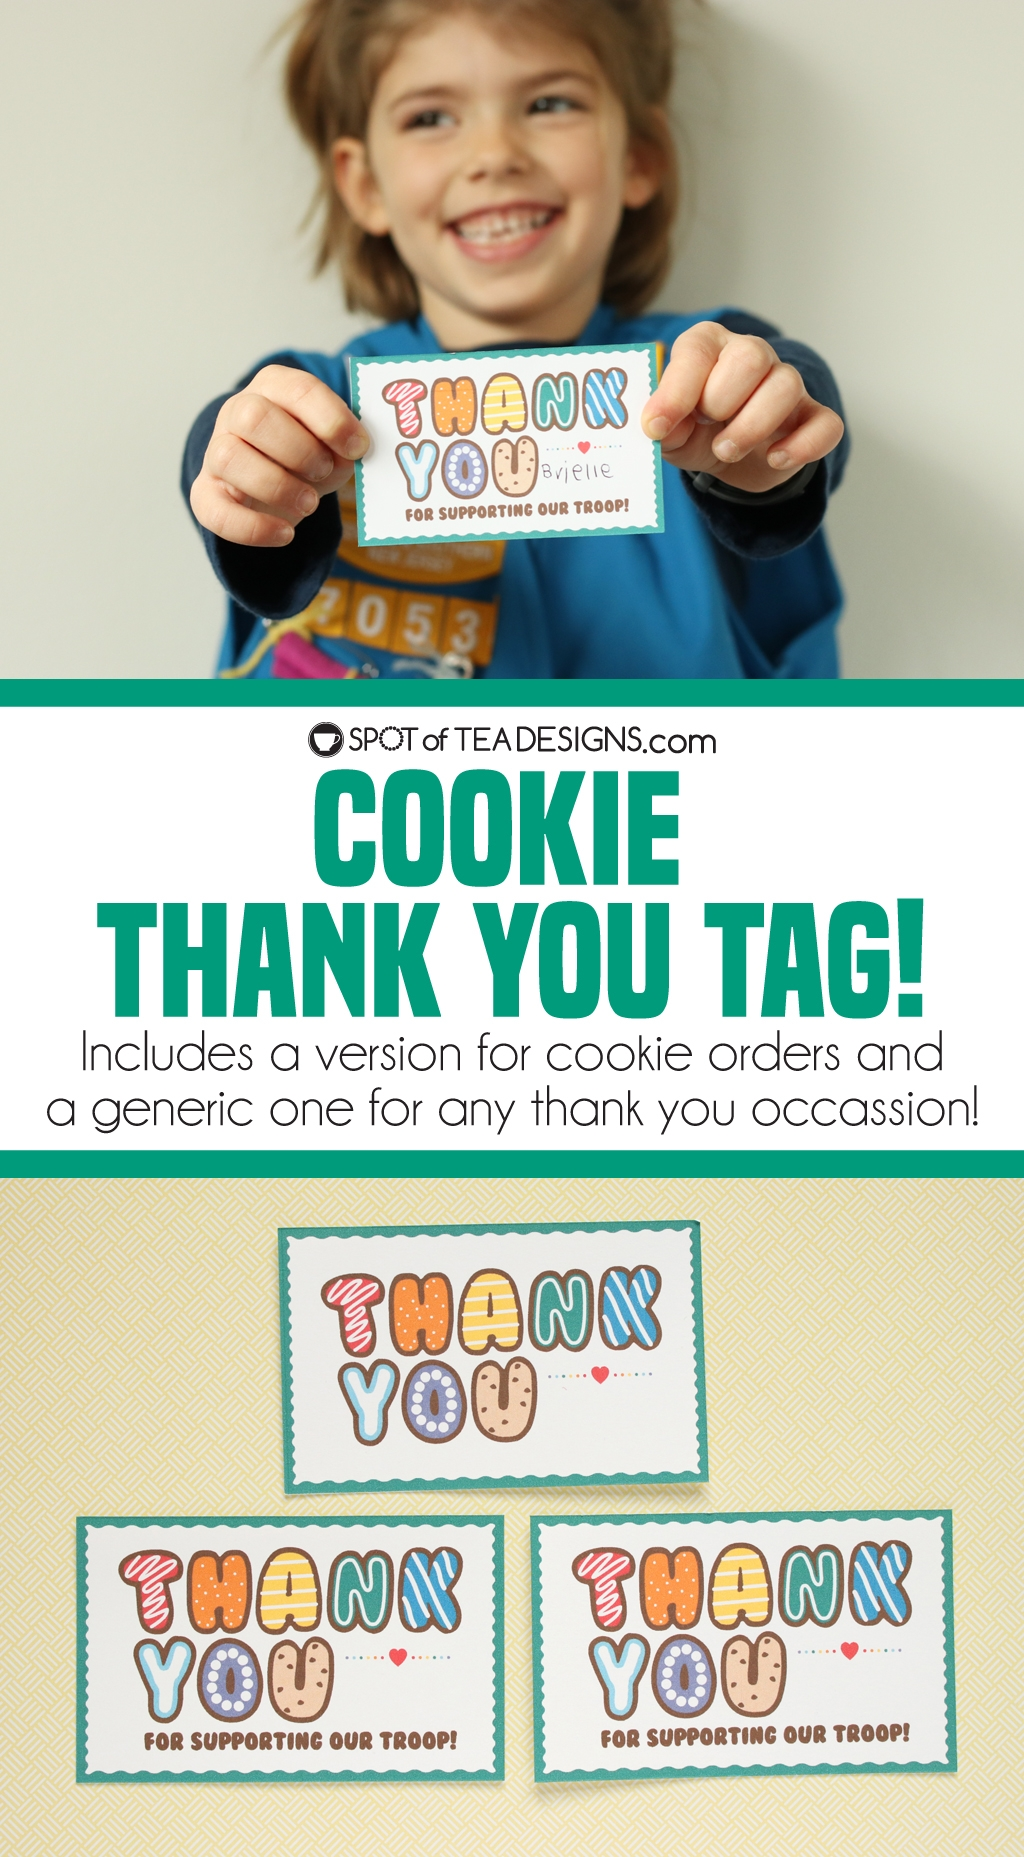 Rainbow cookie thank you tag - tie to cookie orders or use the generic tag for any thank your reason! | spotofteadesigns.com